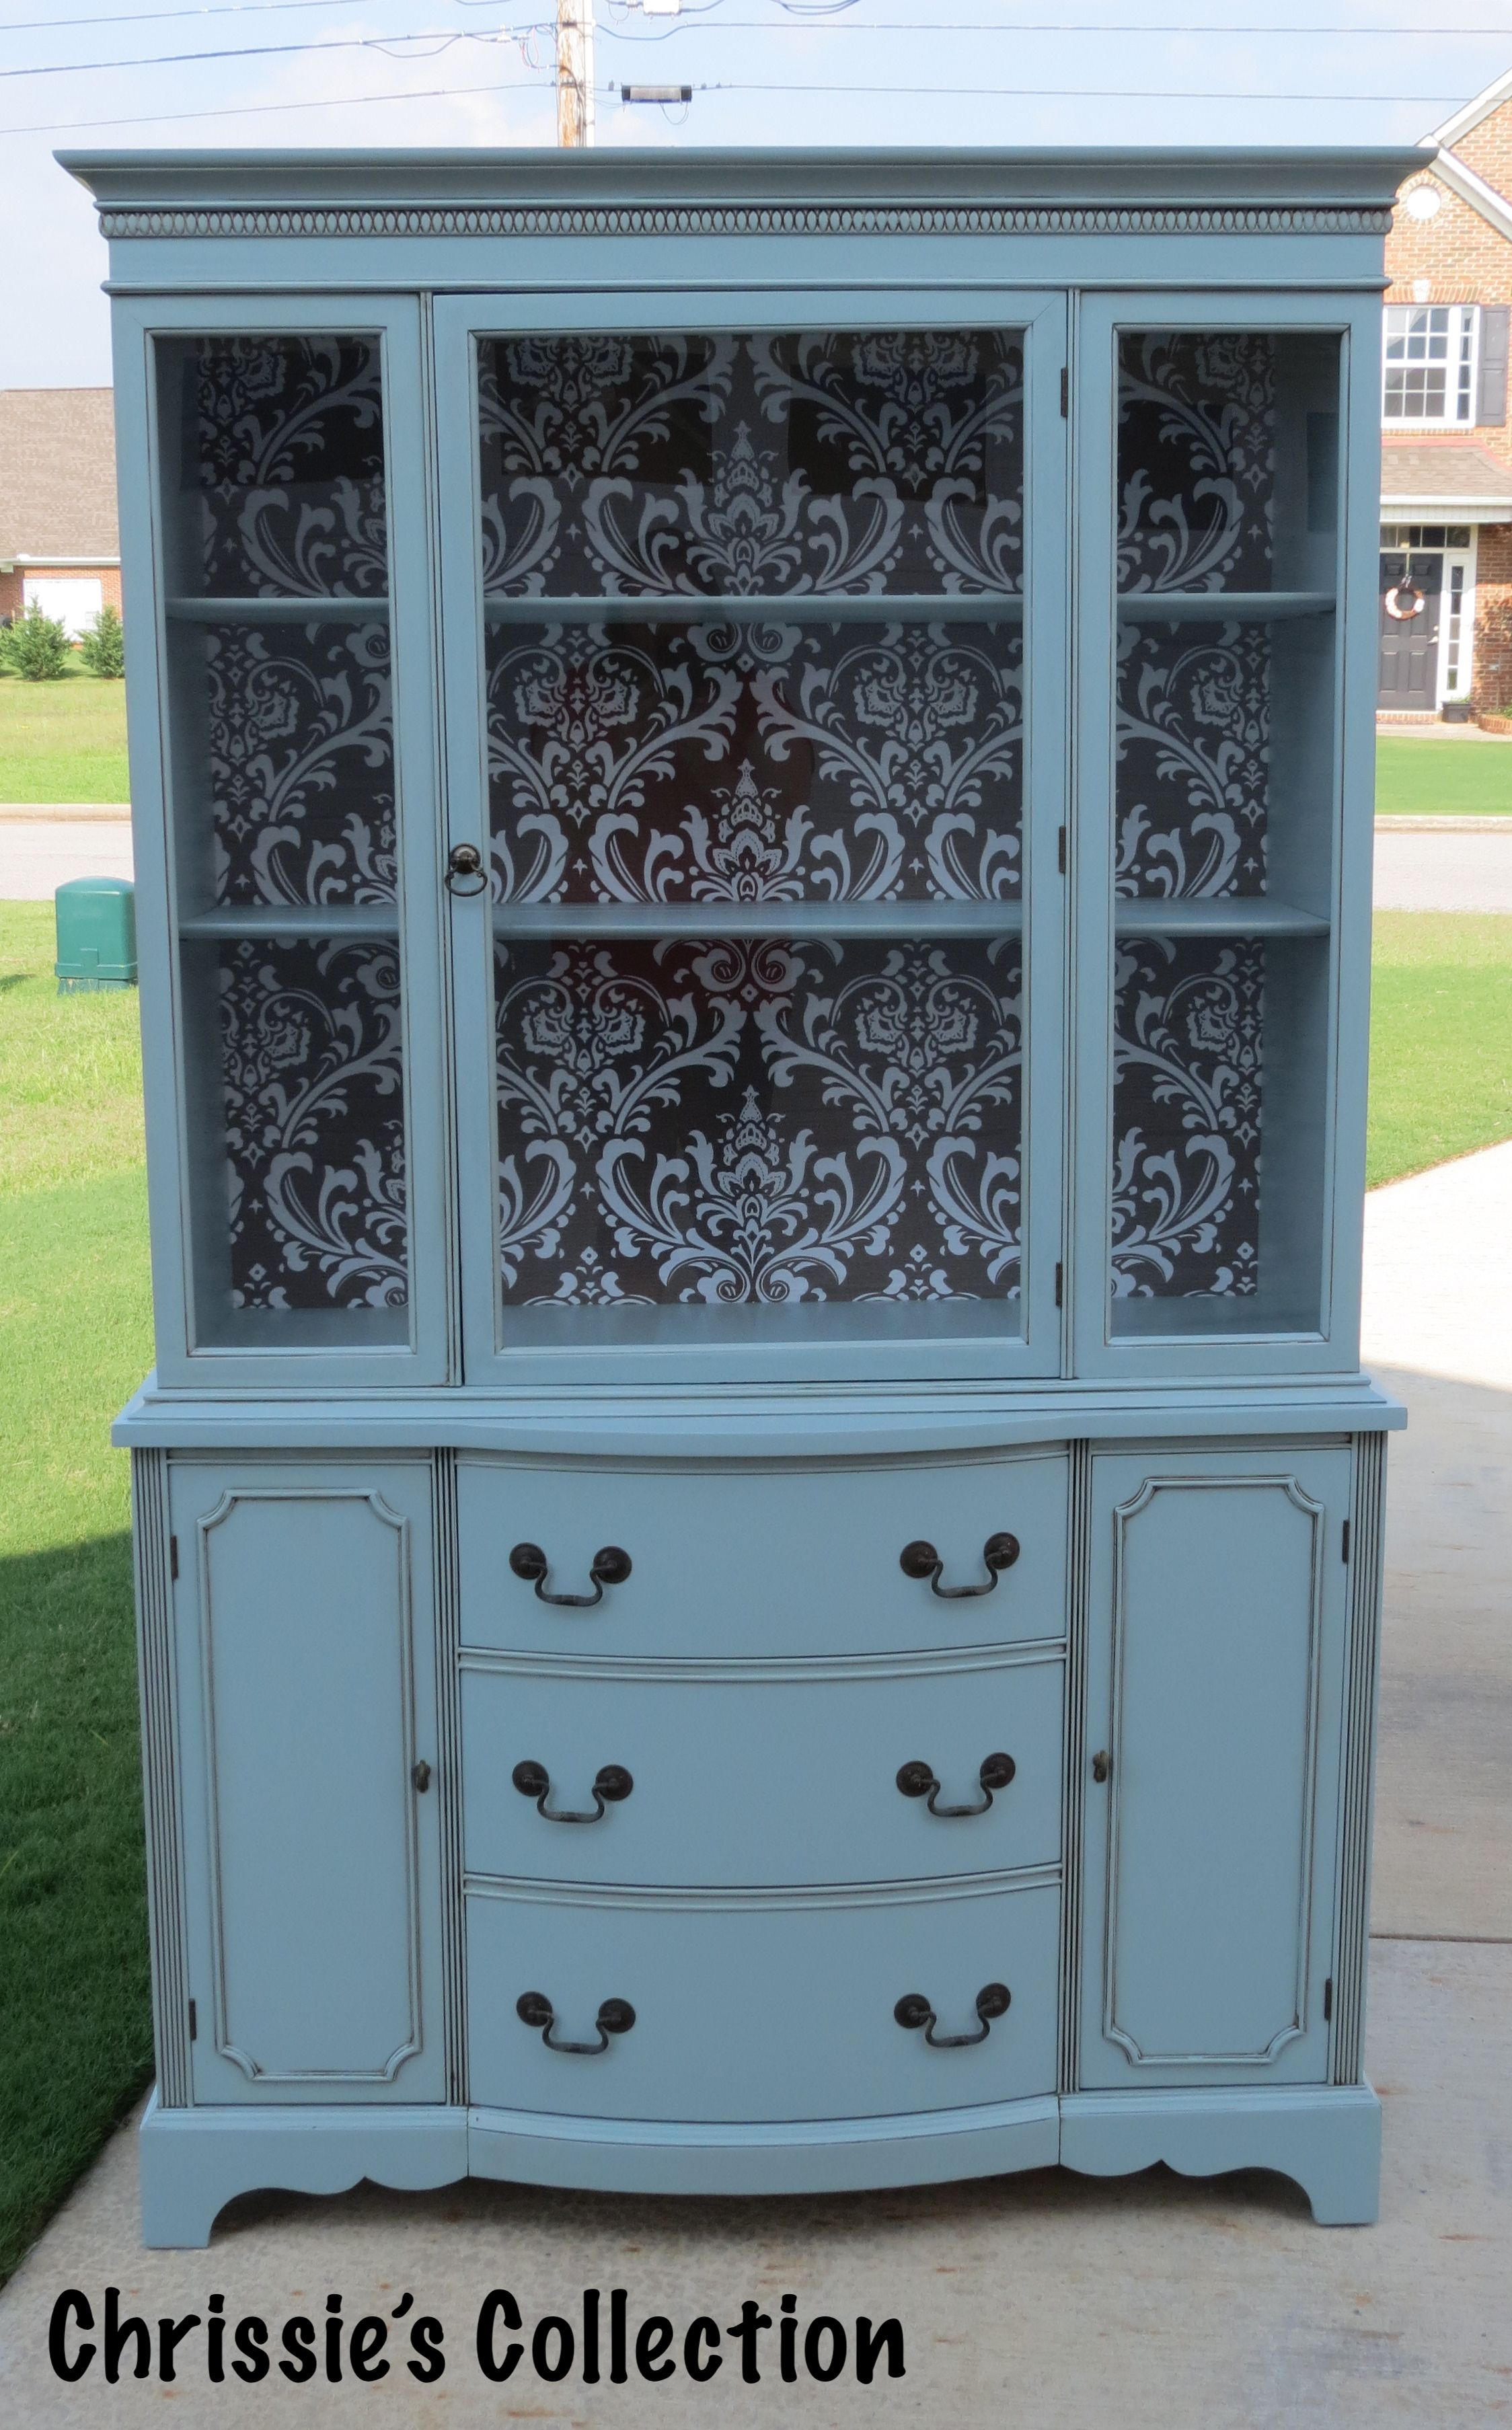 Damask china cabinet by chrissieus collection painted in general